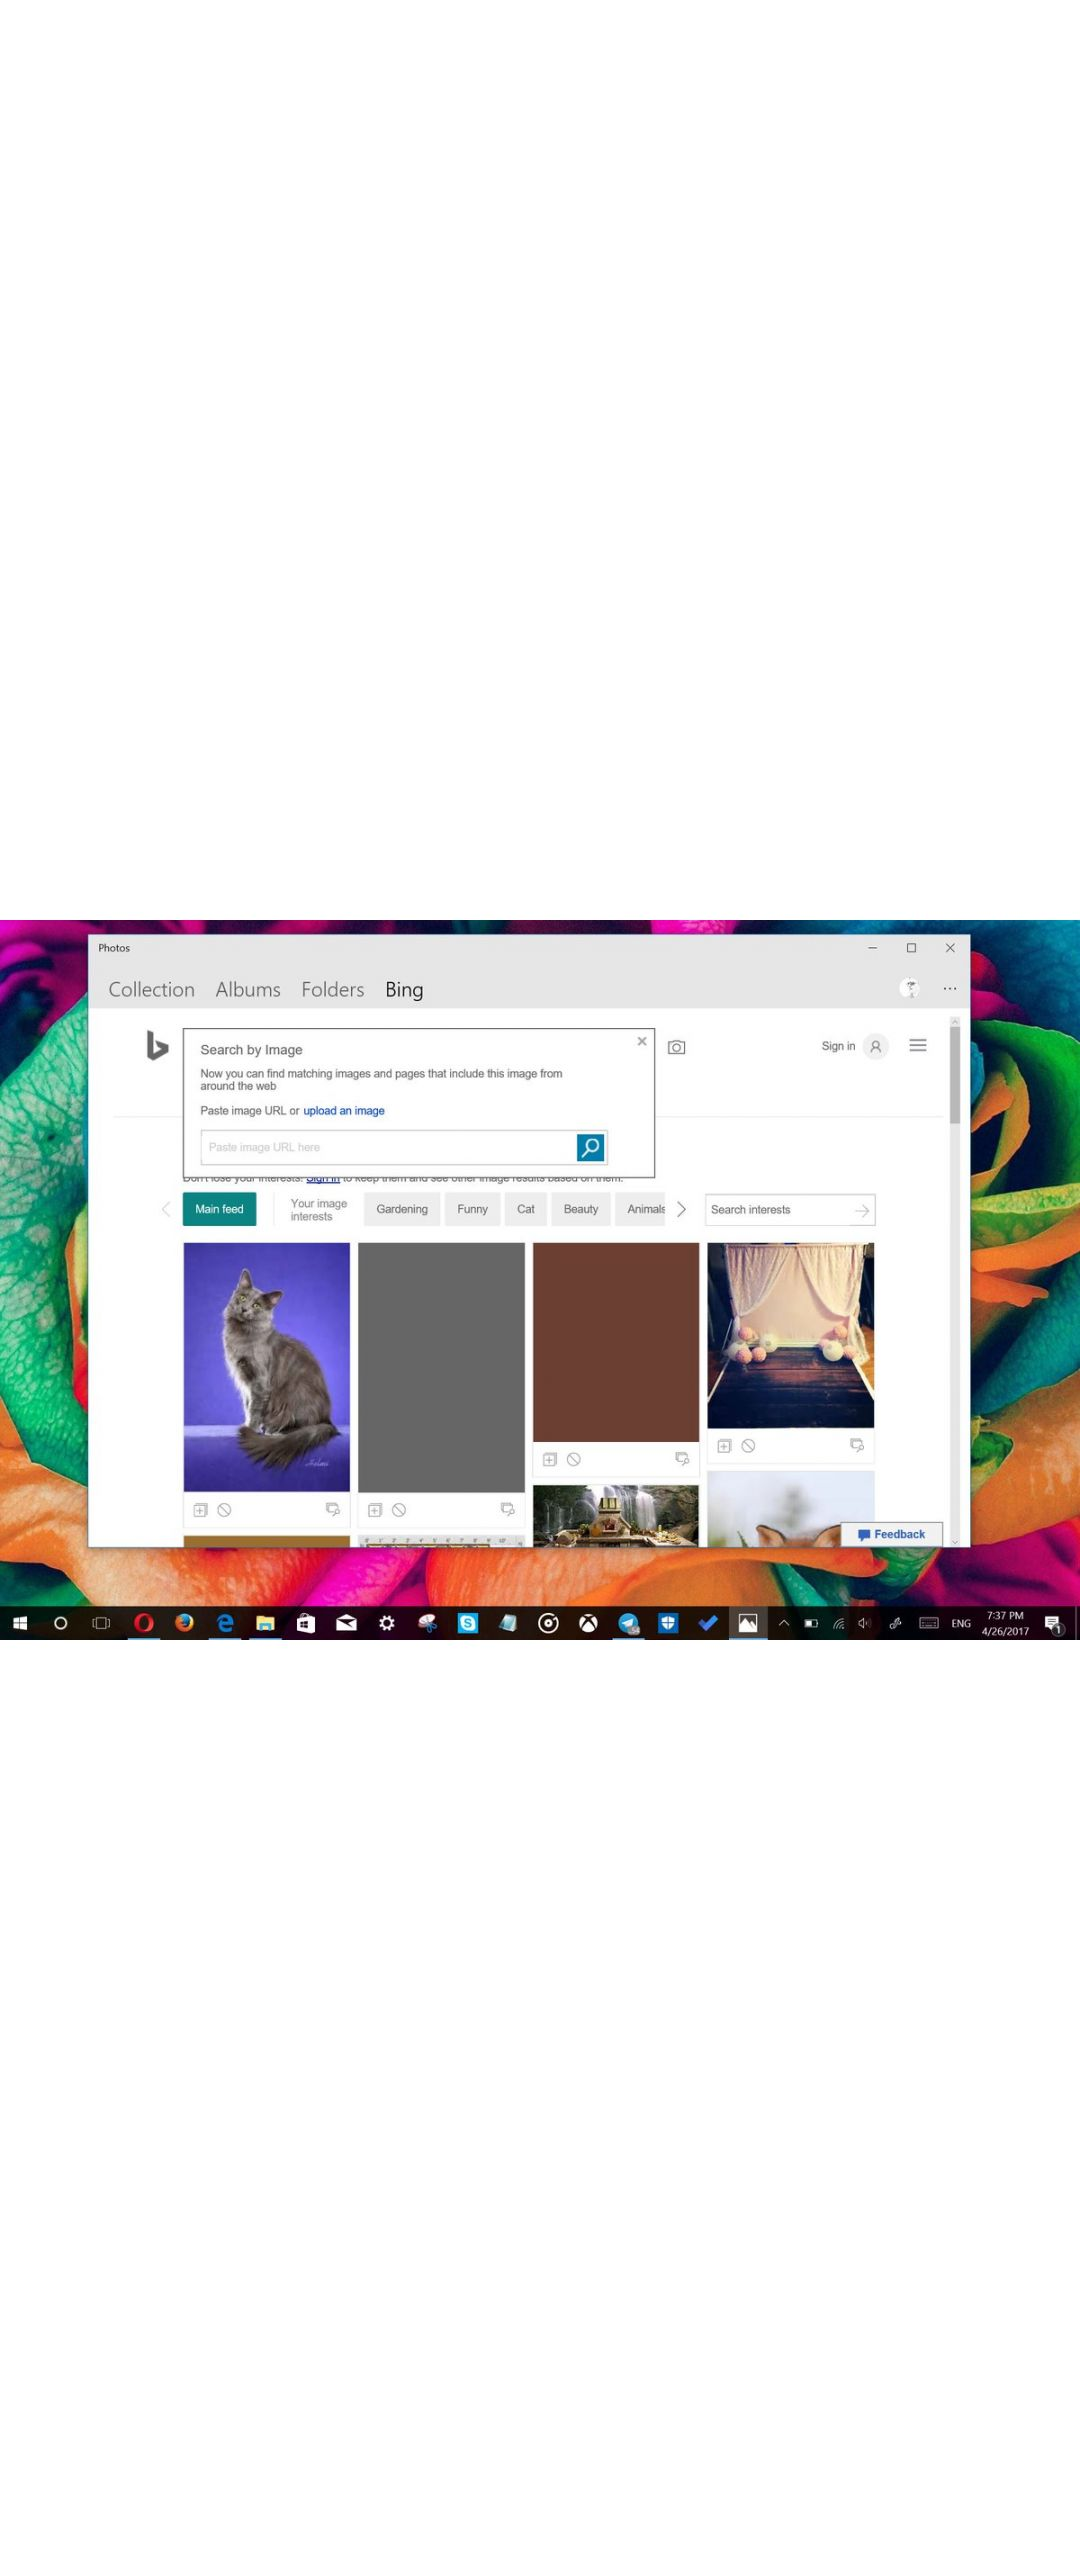 App de Fotos para Windows 10 integrará a Bing